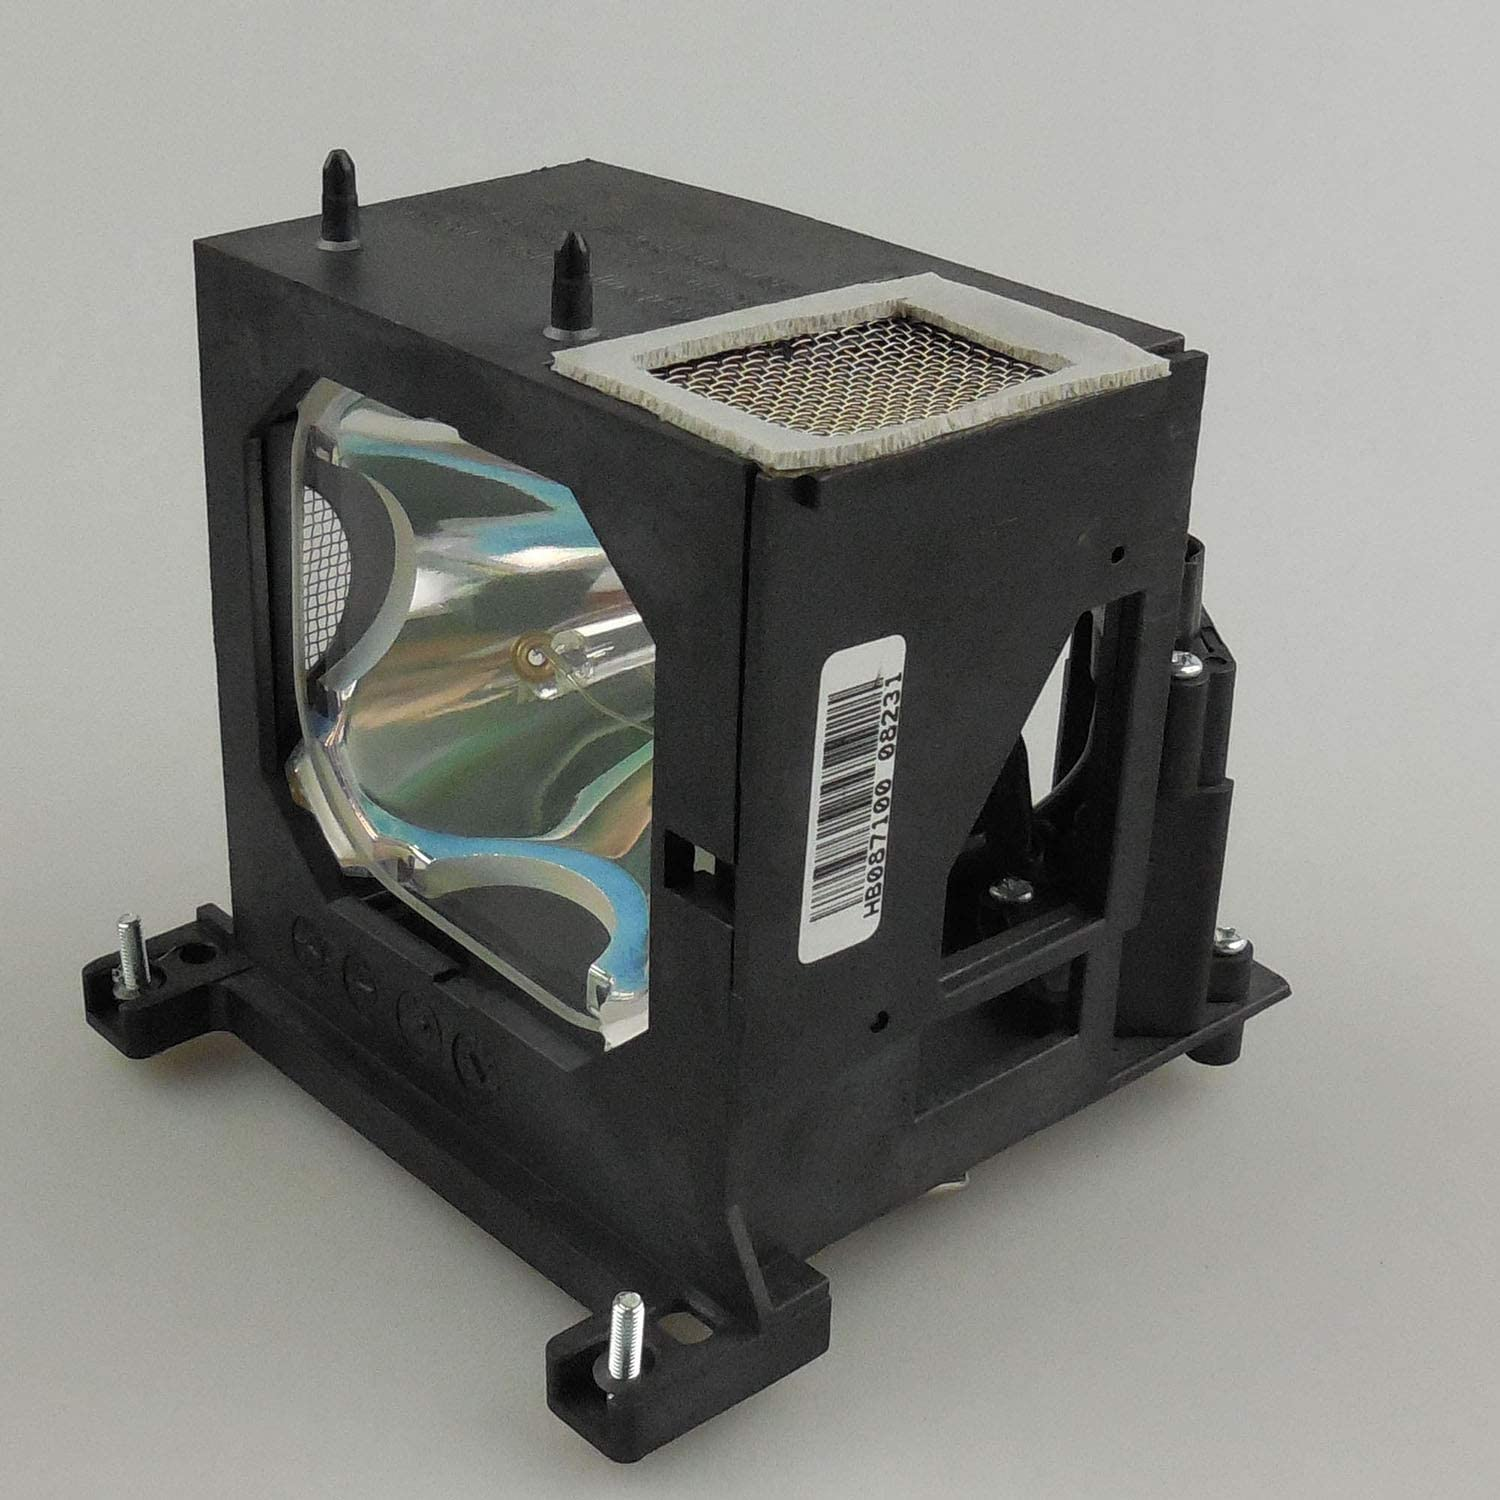 VPL-VW60 VPL-VW50 CTLAMP LMP-H200 Professional Replacement Projector Lamp Module Compatible with Sony VPL-VW40